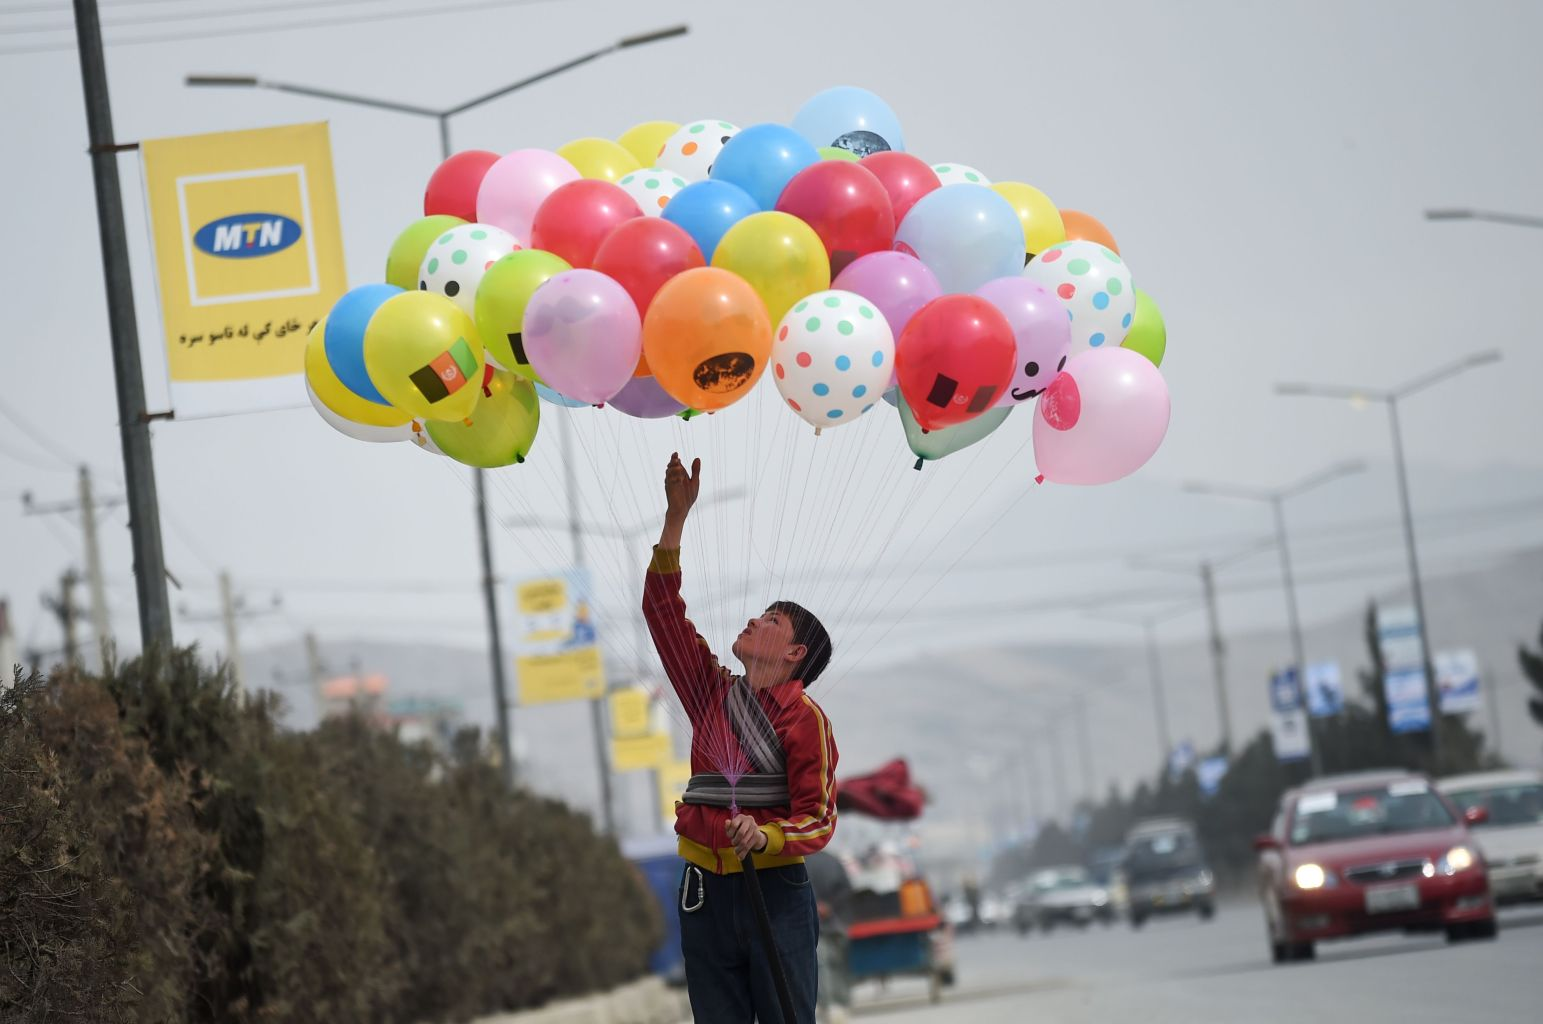 An Afghan child, who works as a balloon vendor, waits for customers alongside a street in Kabul on February 23, 2018. / AFP PHOTO / WAKIL KOHSAR        (Photo credit should read WAKIL KOHSAR/AFP/Getty Images)